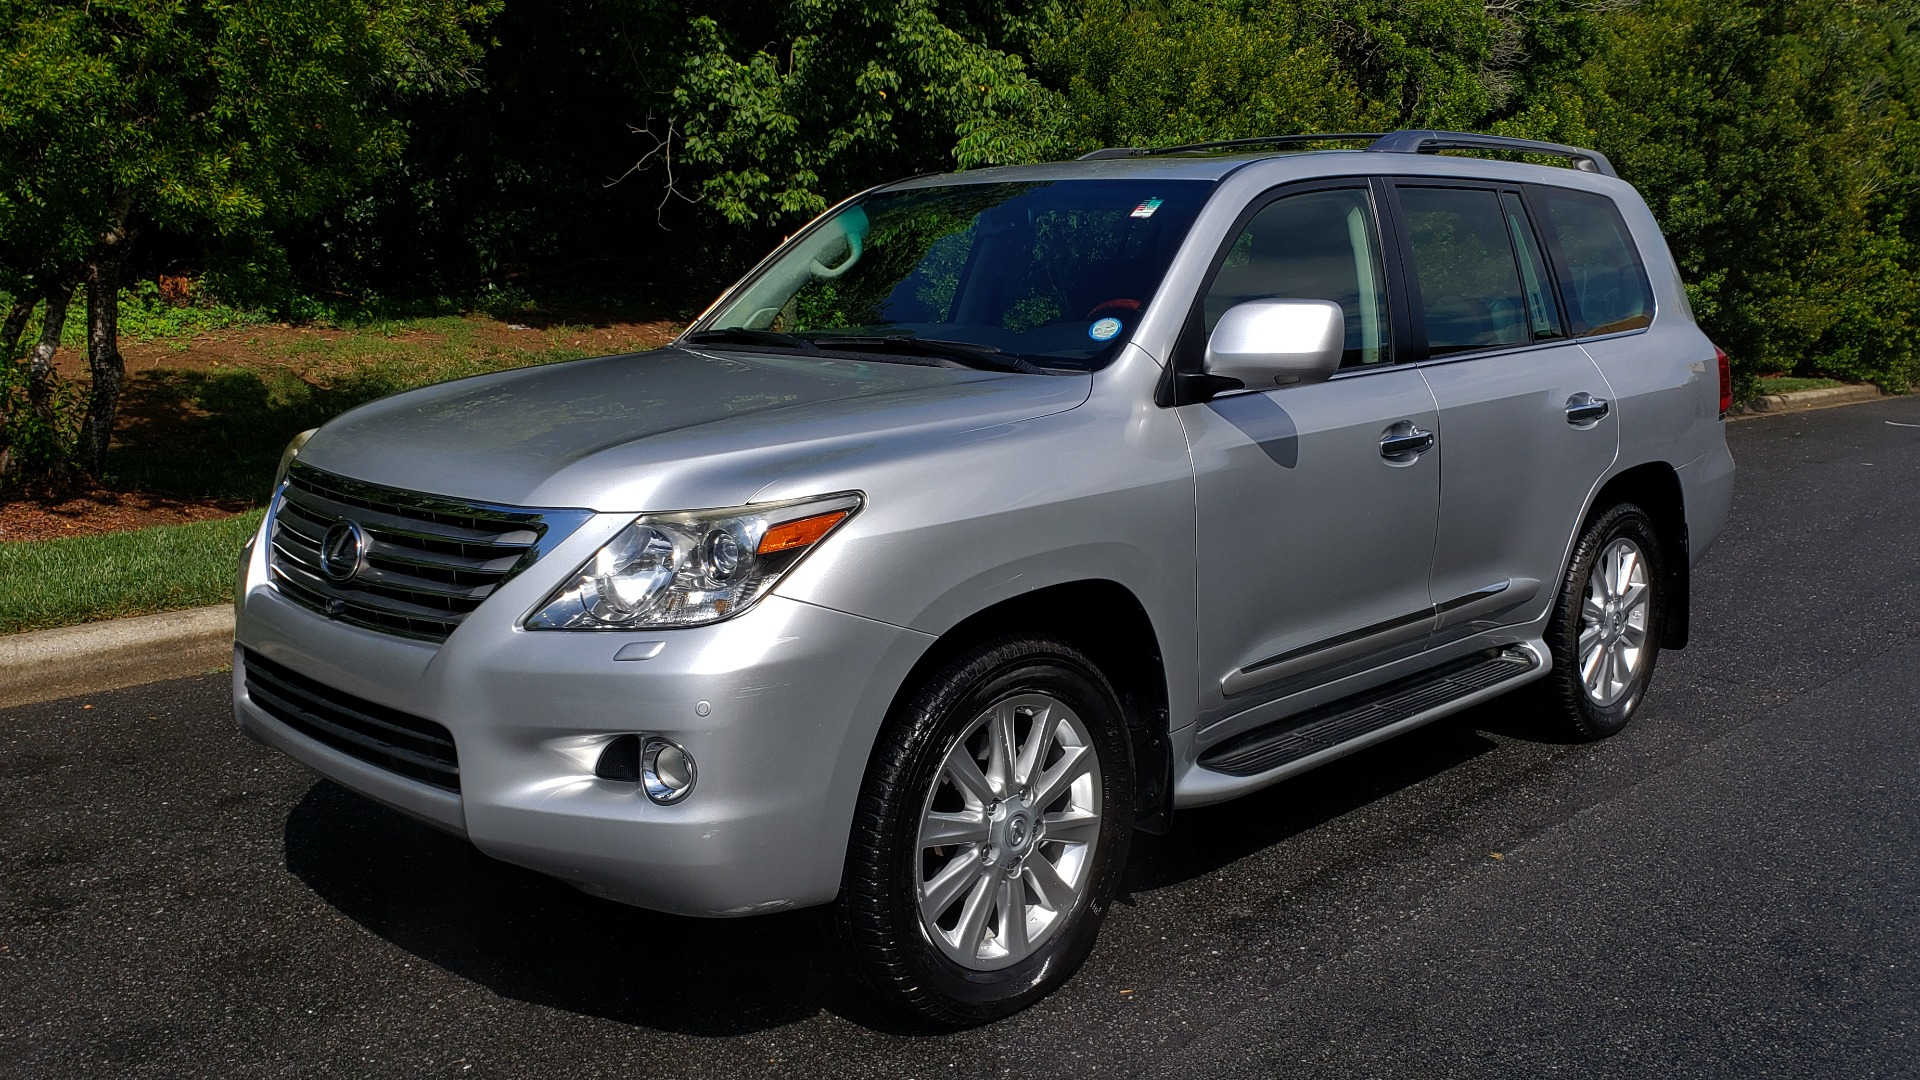 Used 2008 Lexus LX 570 4WD NAV / TECHNOLOGY PKG / 3-ROW / SUNROOF / REARVIEW for sale Sold at Formula Imports in Charlotte NC 28227 1